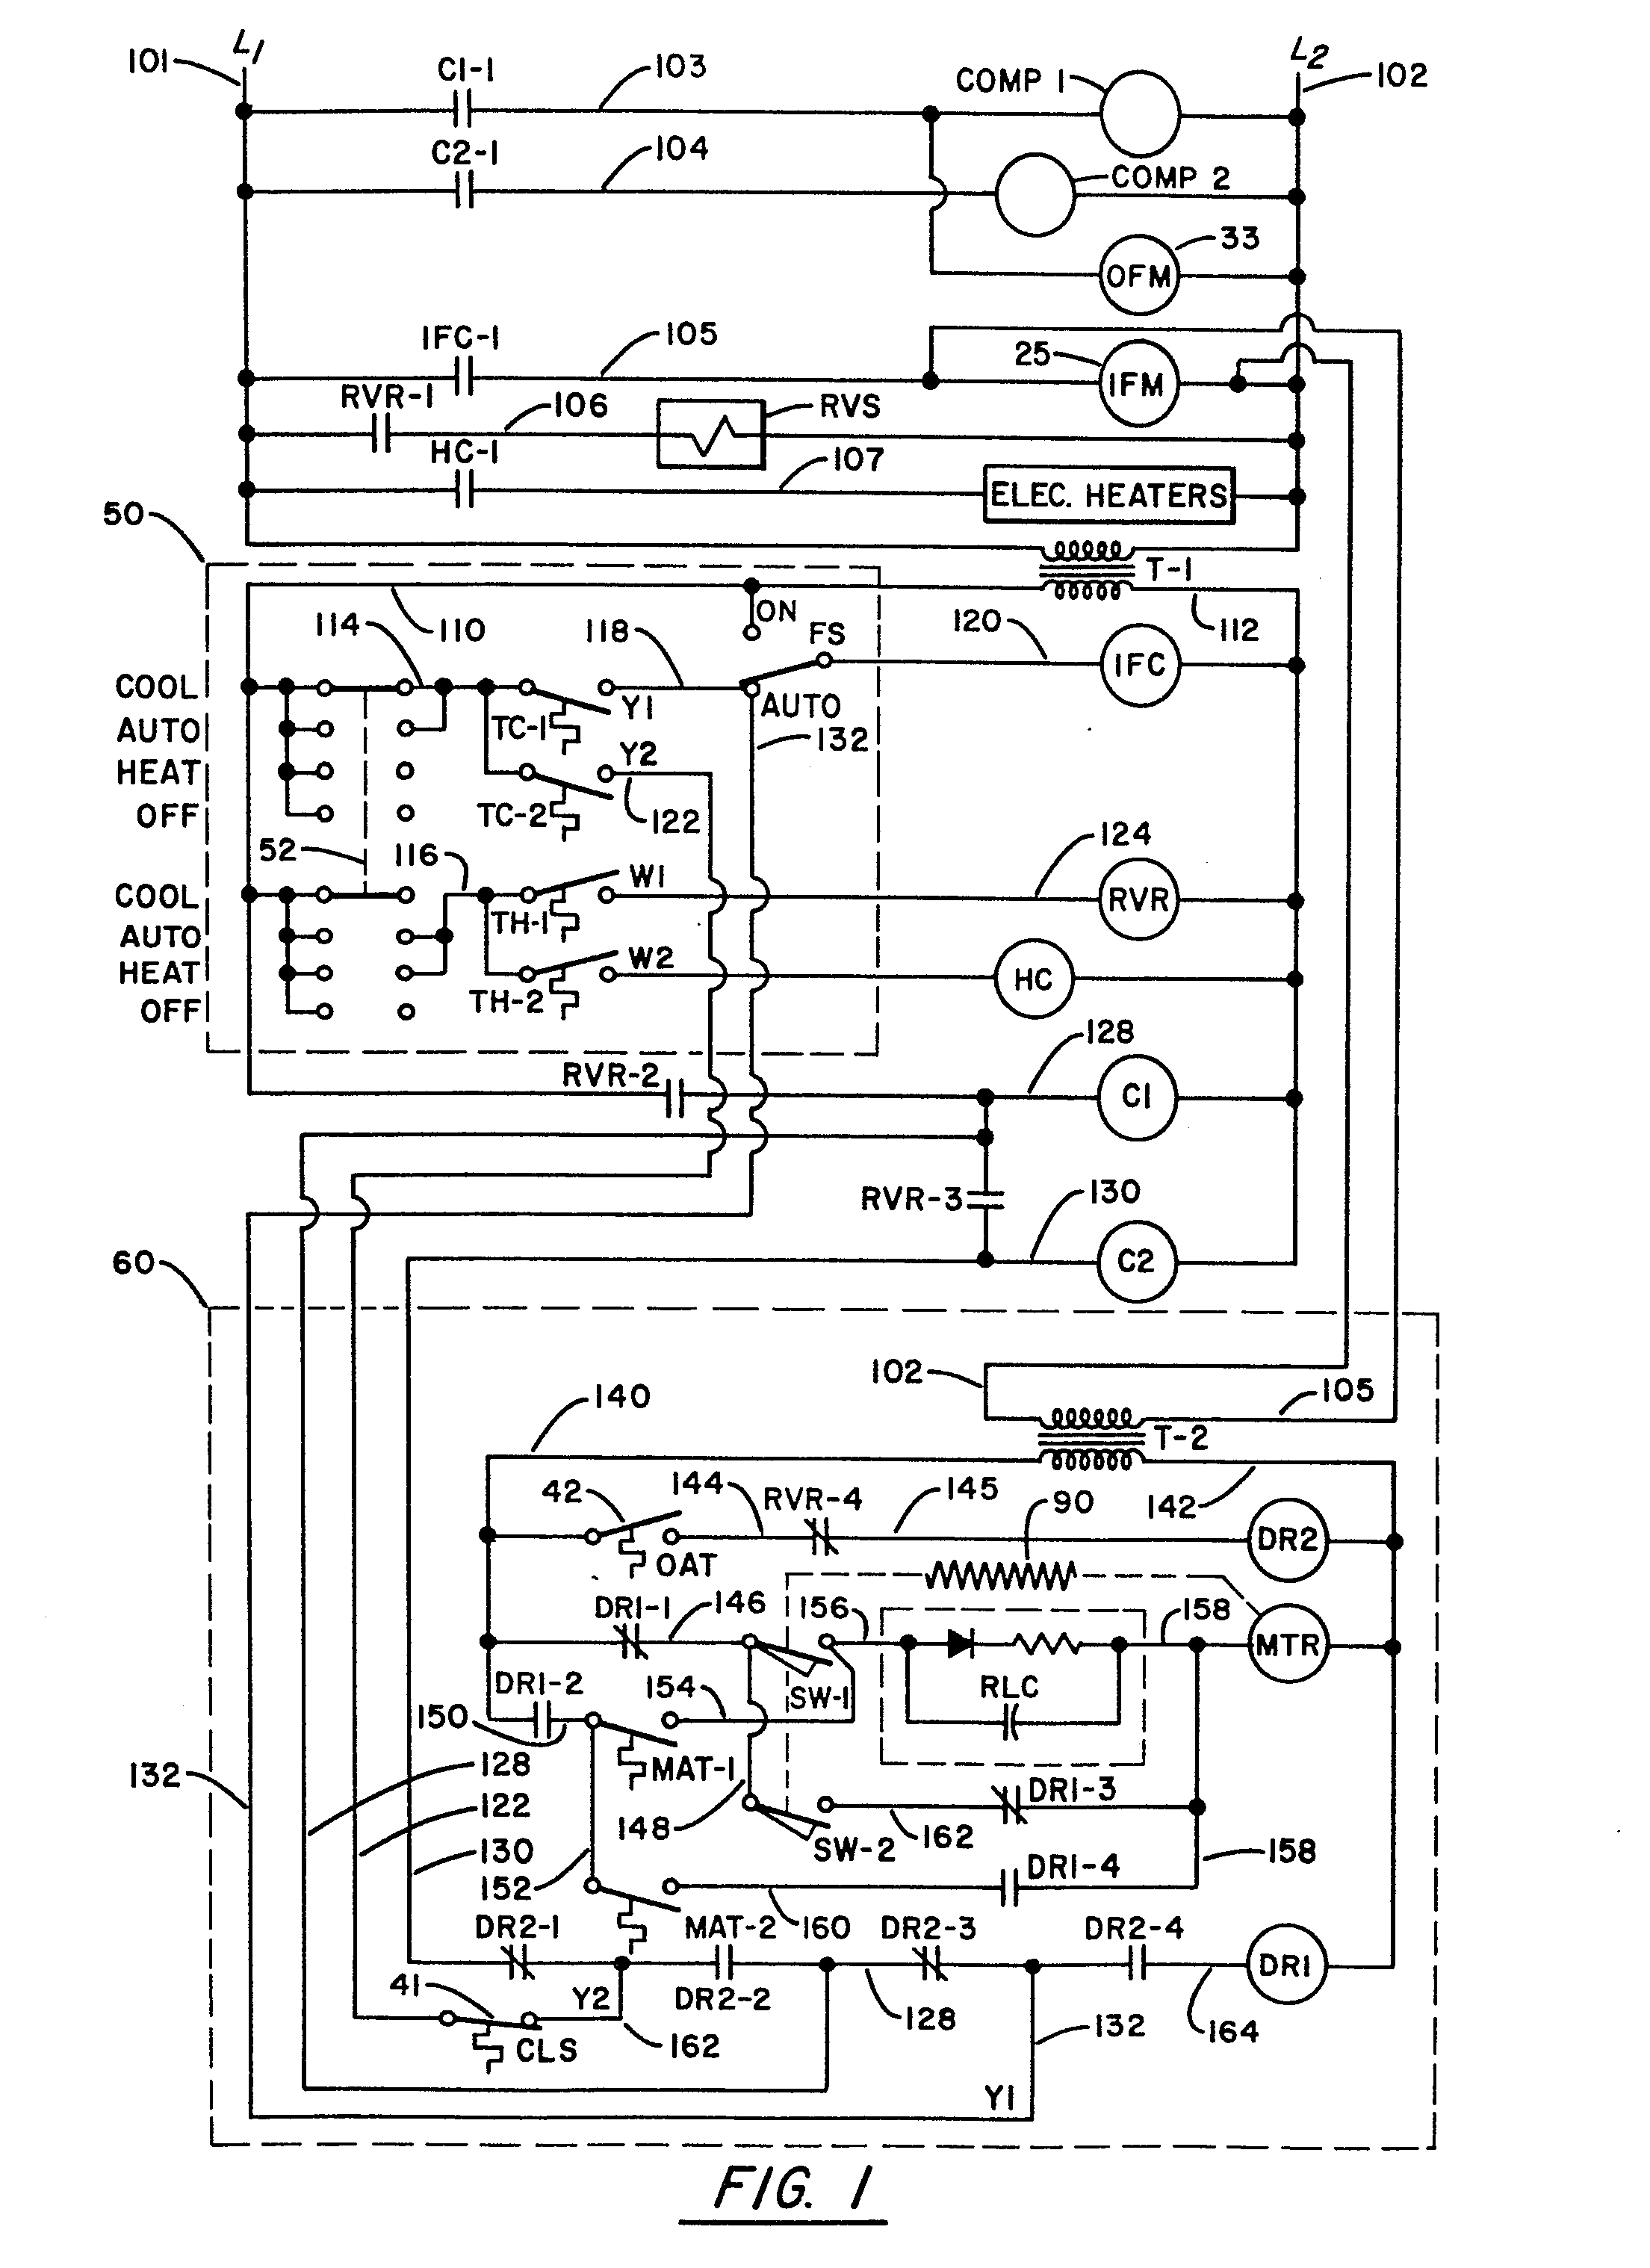 imgf0001 patent ep0080838a1 air conditioning economizer control method aaon rooftop units wiring diagram at crackthecode.co